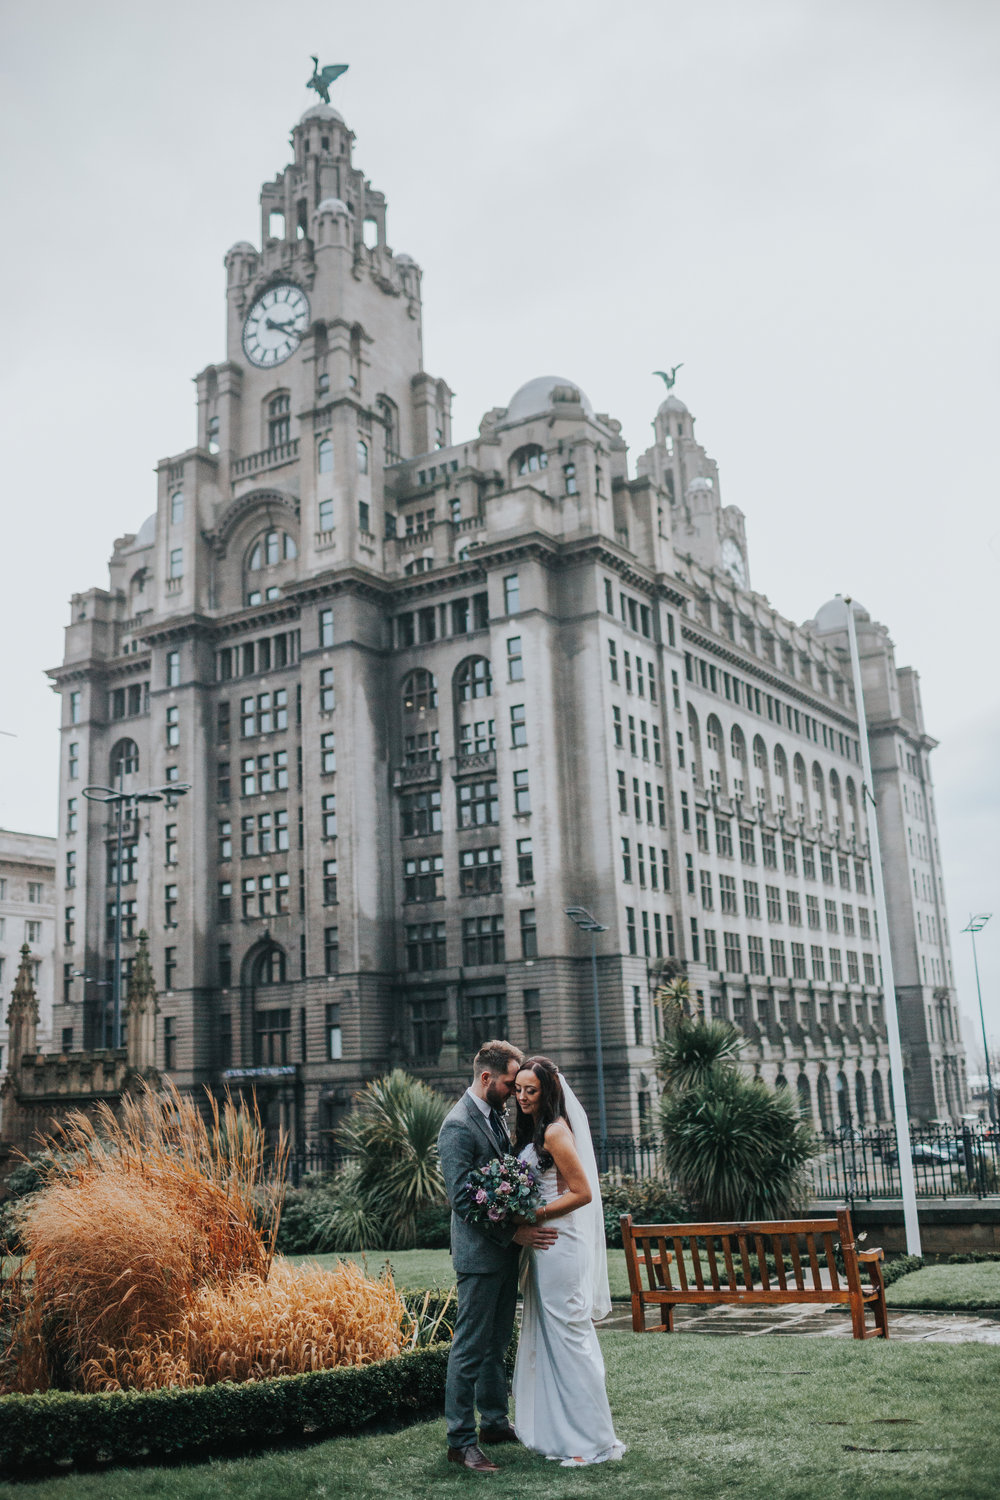 Bride and Groom in front of the Liver Buildings, Liverpool